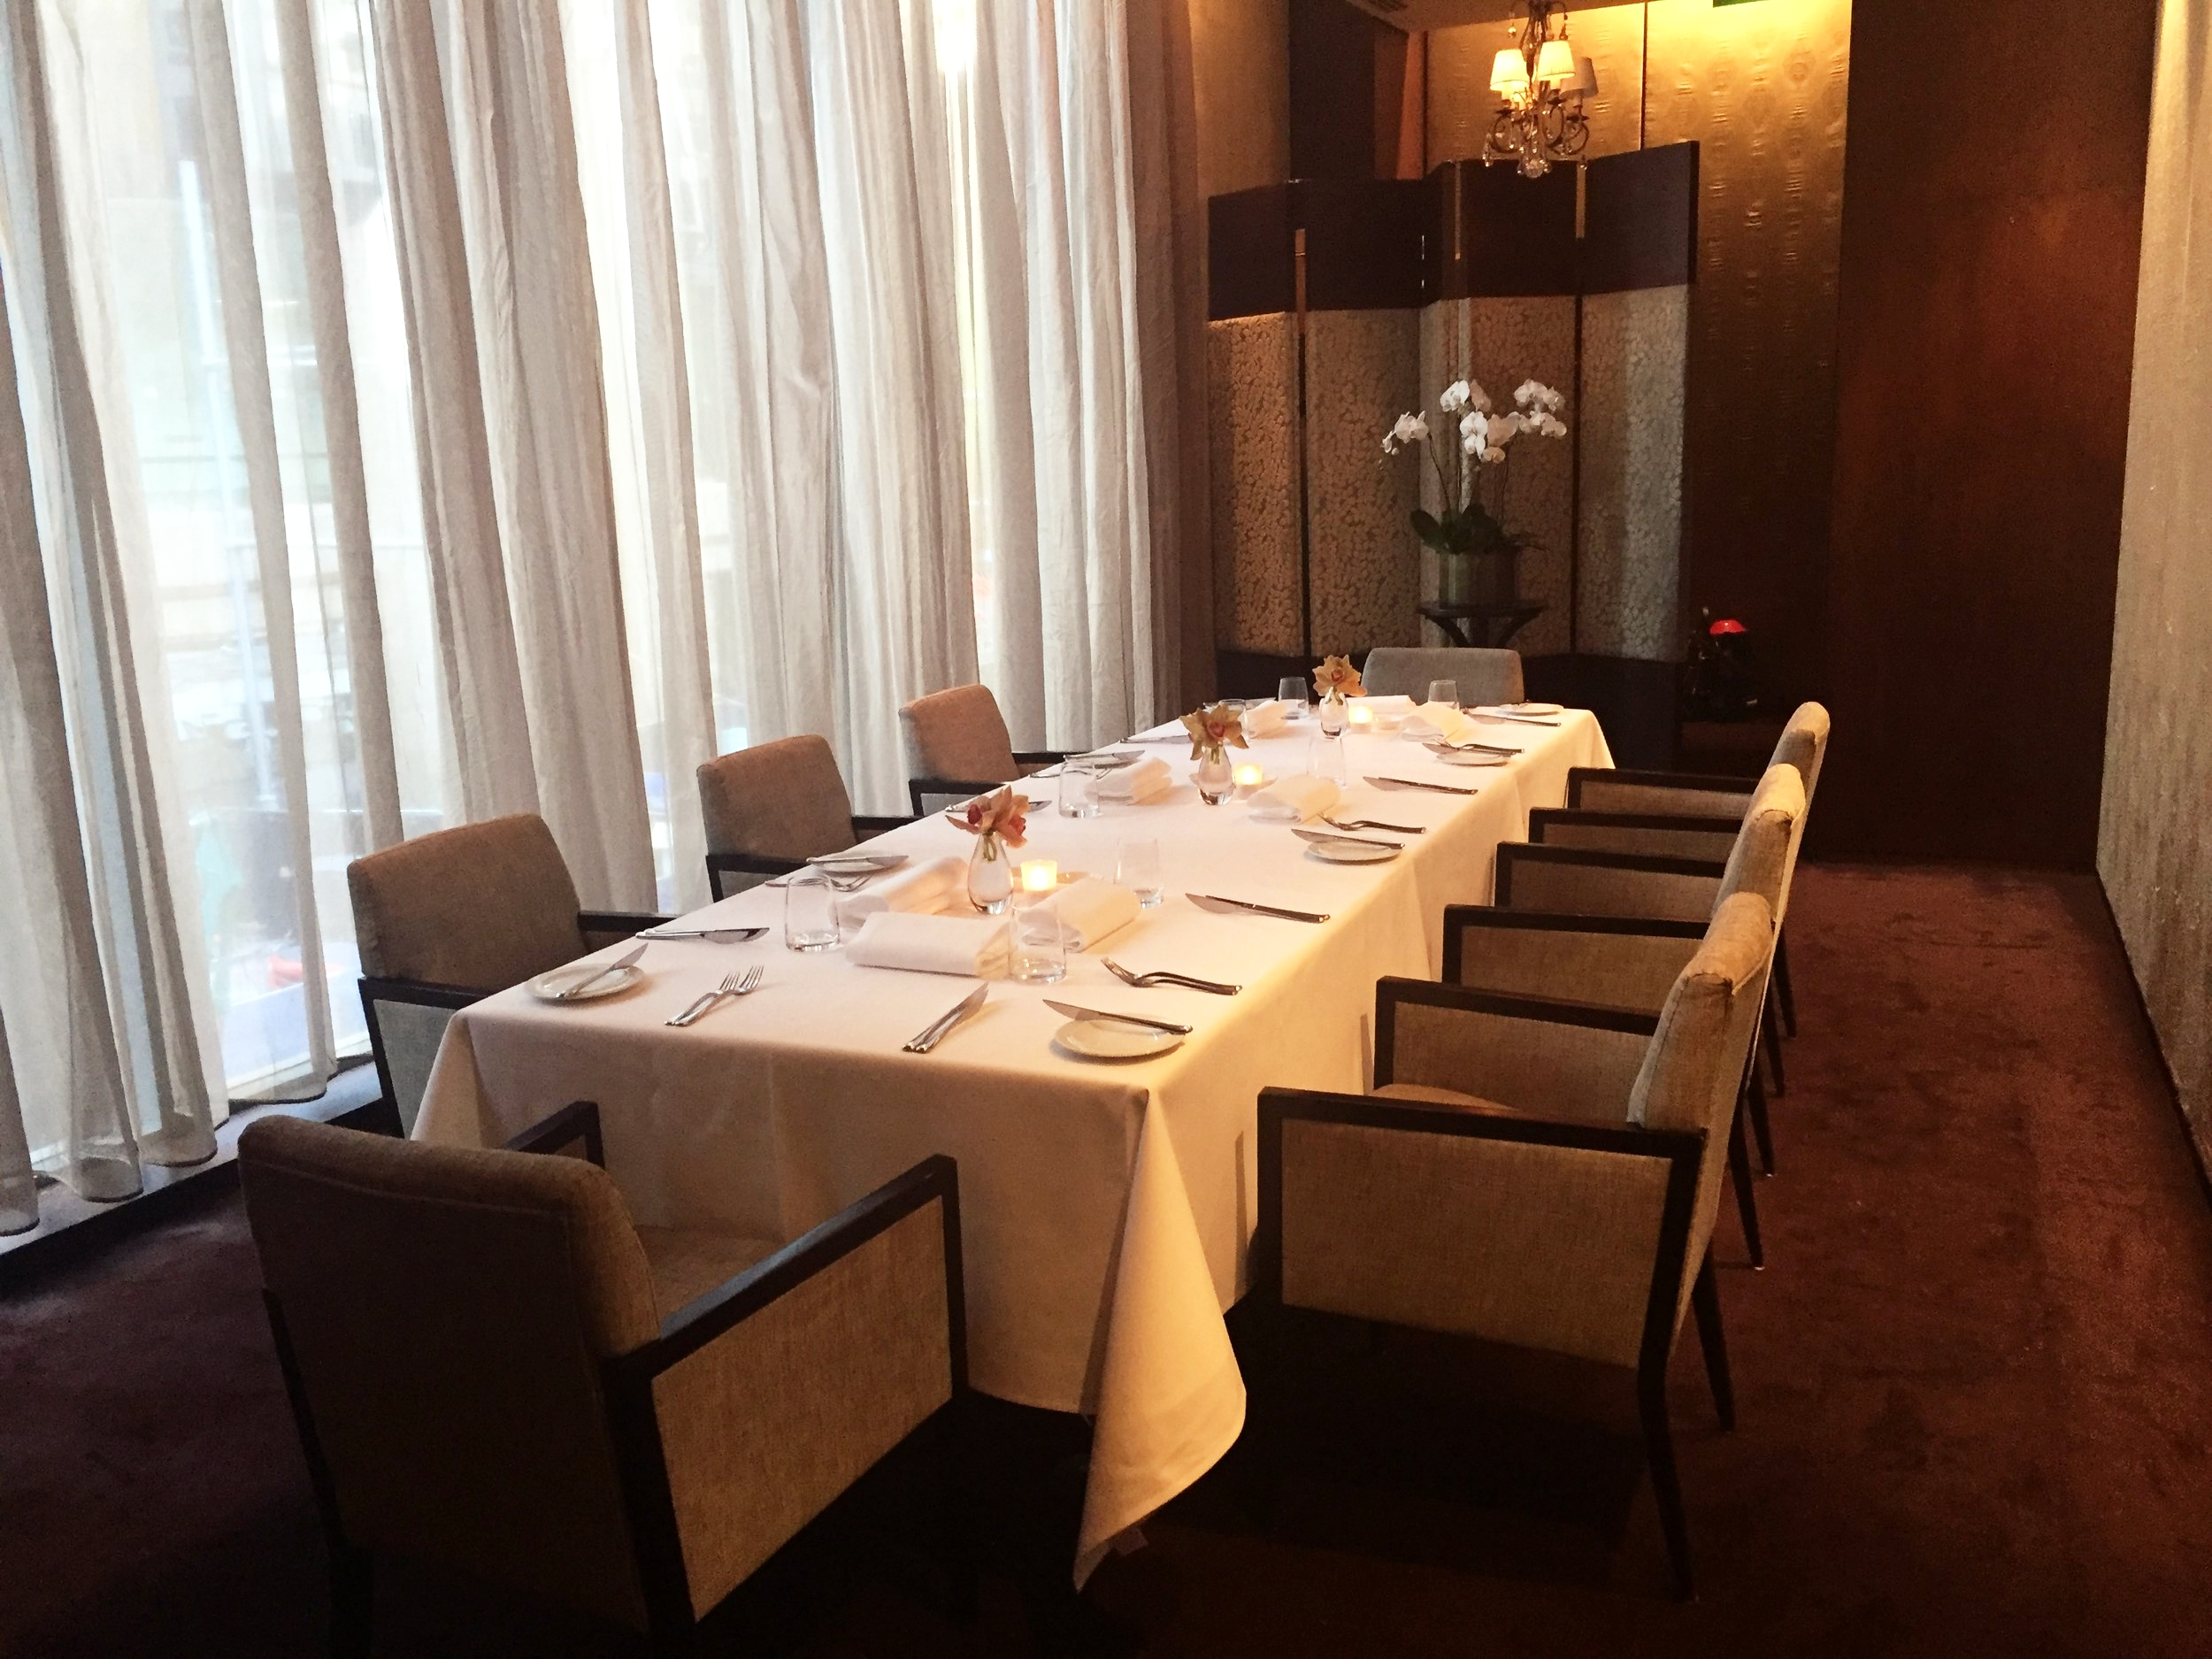 PRIVATE DINING ROOM | Elegant Dining At Its Best: Great Service, Food